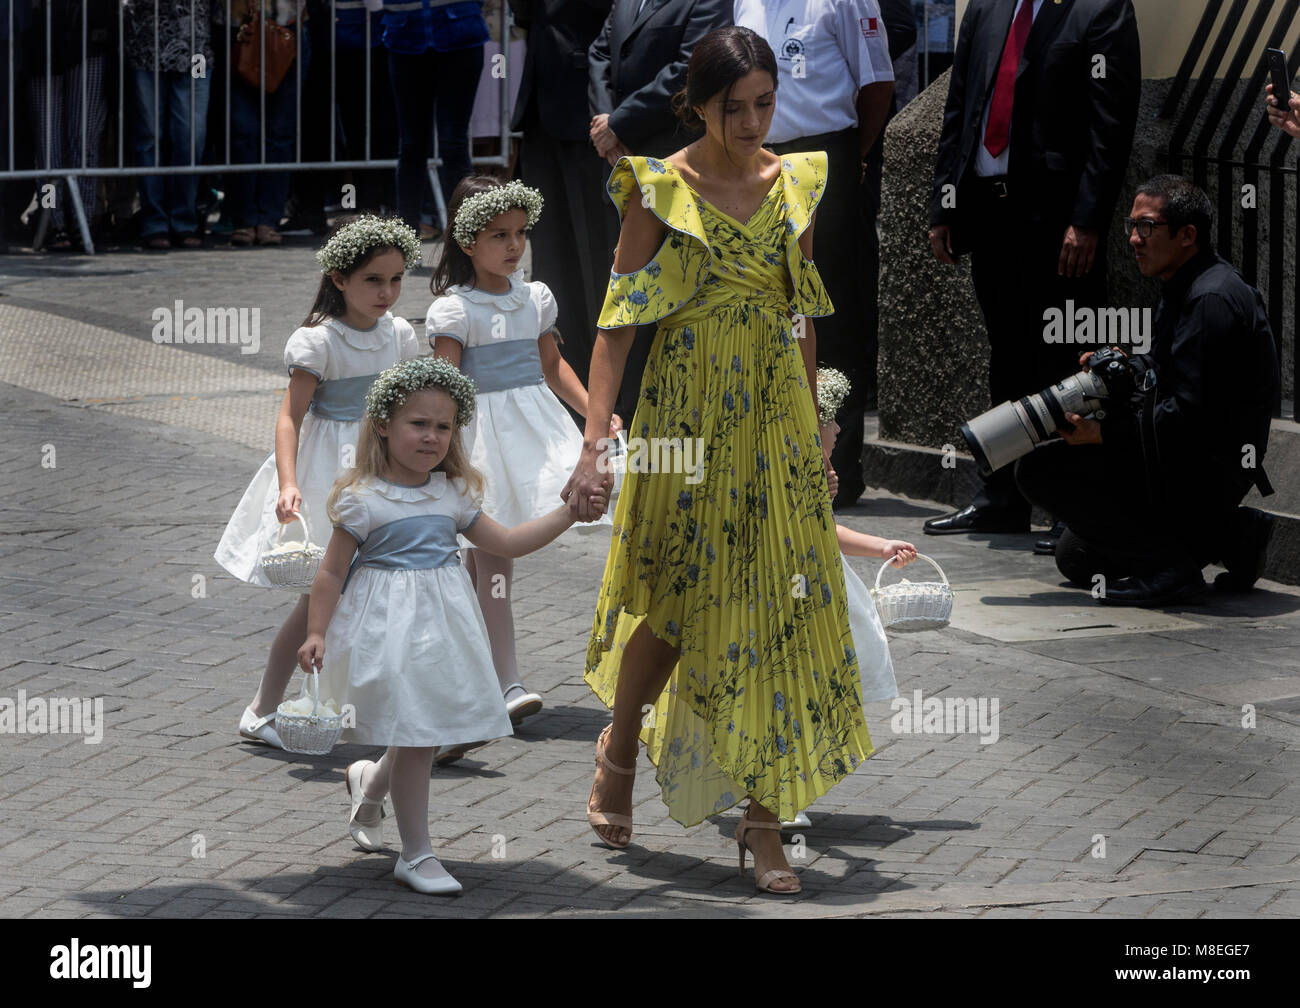 16 March 2018, Peru, Lima: Three flower girls arrive at the old town of Lima for the wedding ceremony of Alessandra - Stock Image